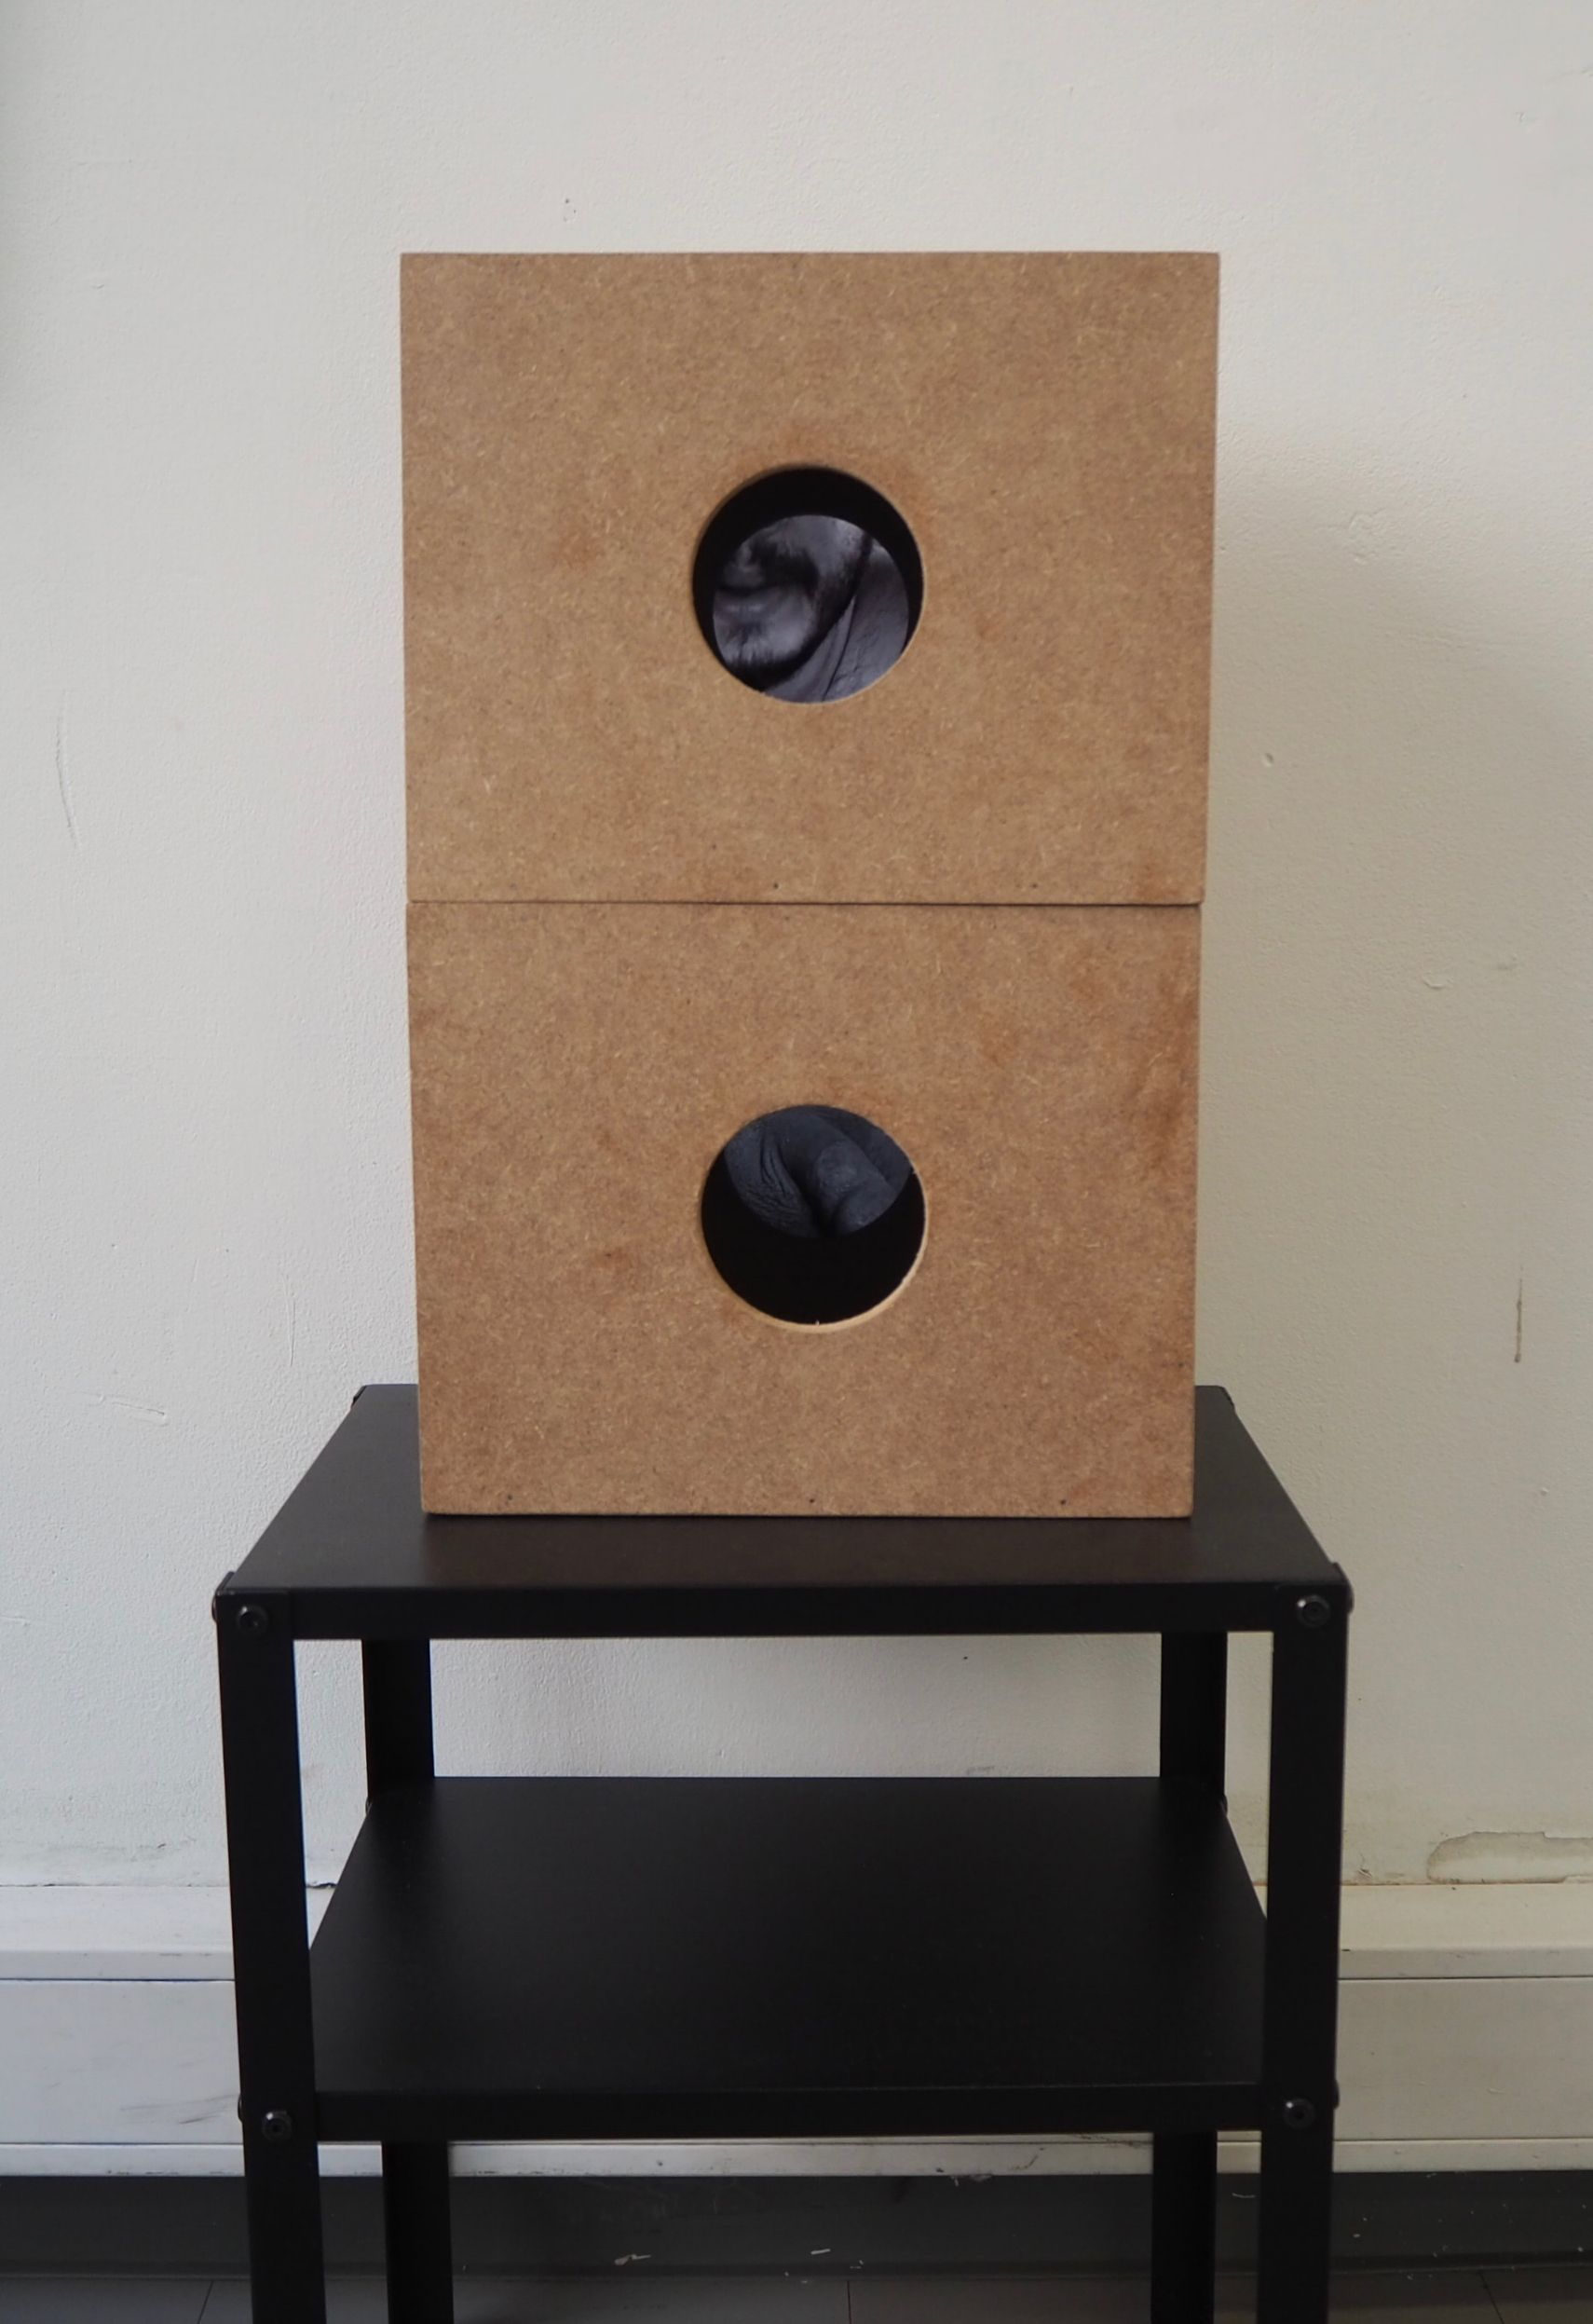 Glory Holes, 2018, video and sound pieces in MDF boxes, on a black metal pedestal, 21 x 27 x 20.5 cm